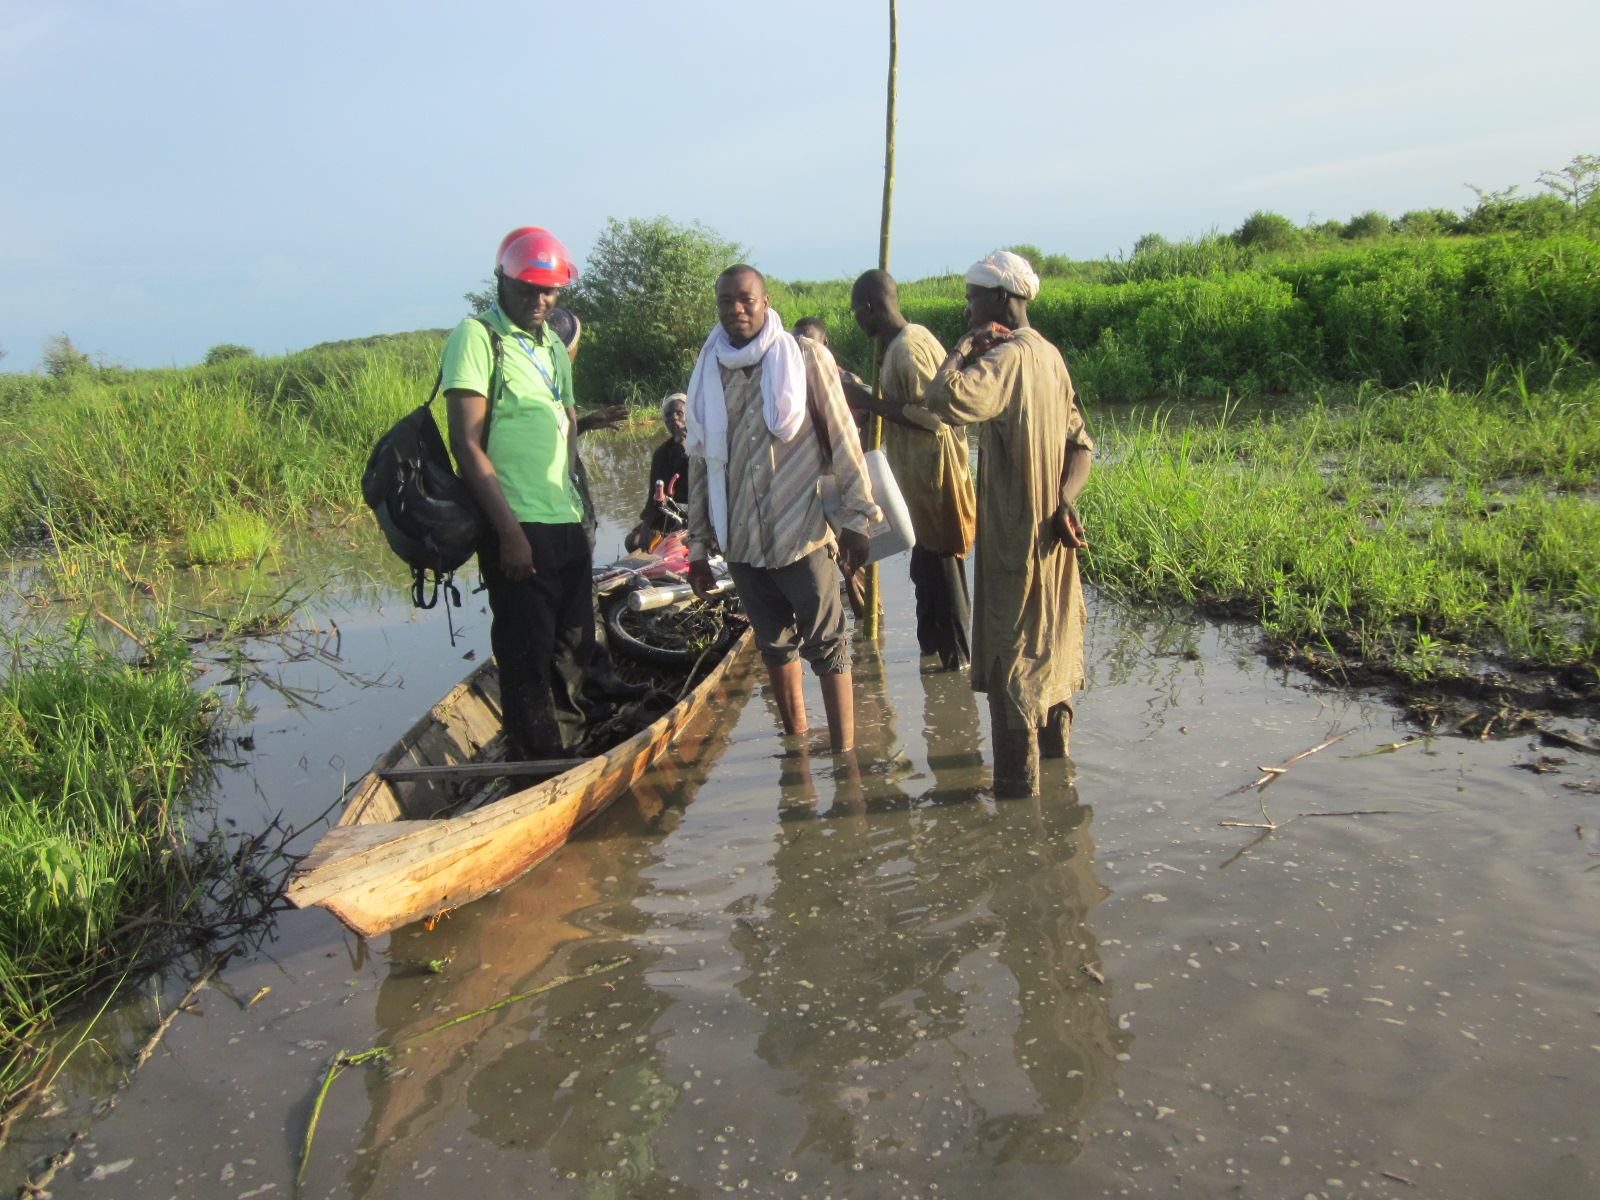 STOP team members boards a canoe to travel through the flooded areas of Chad to vaccinate children